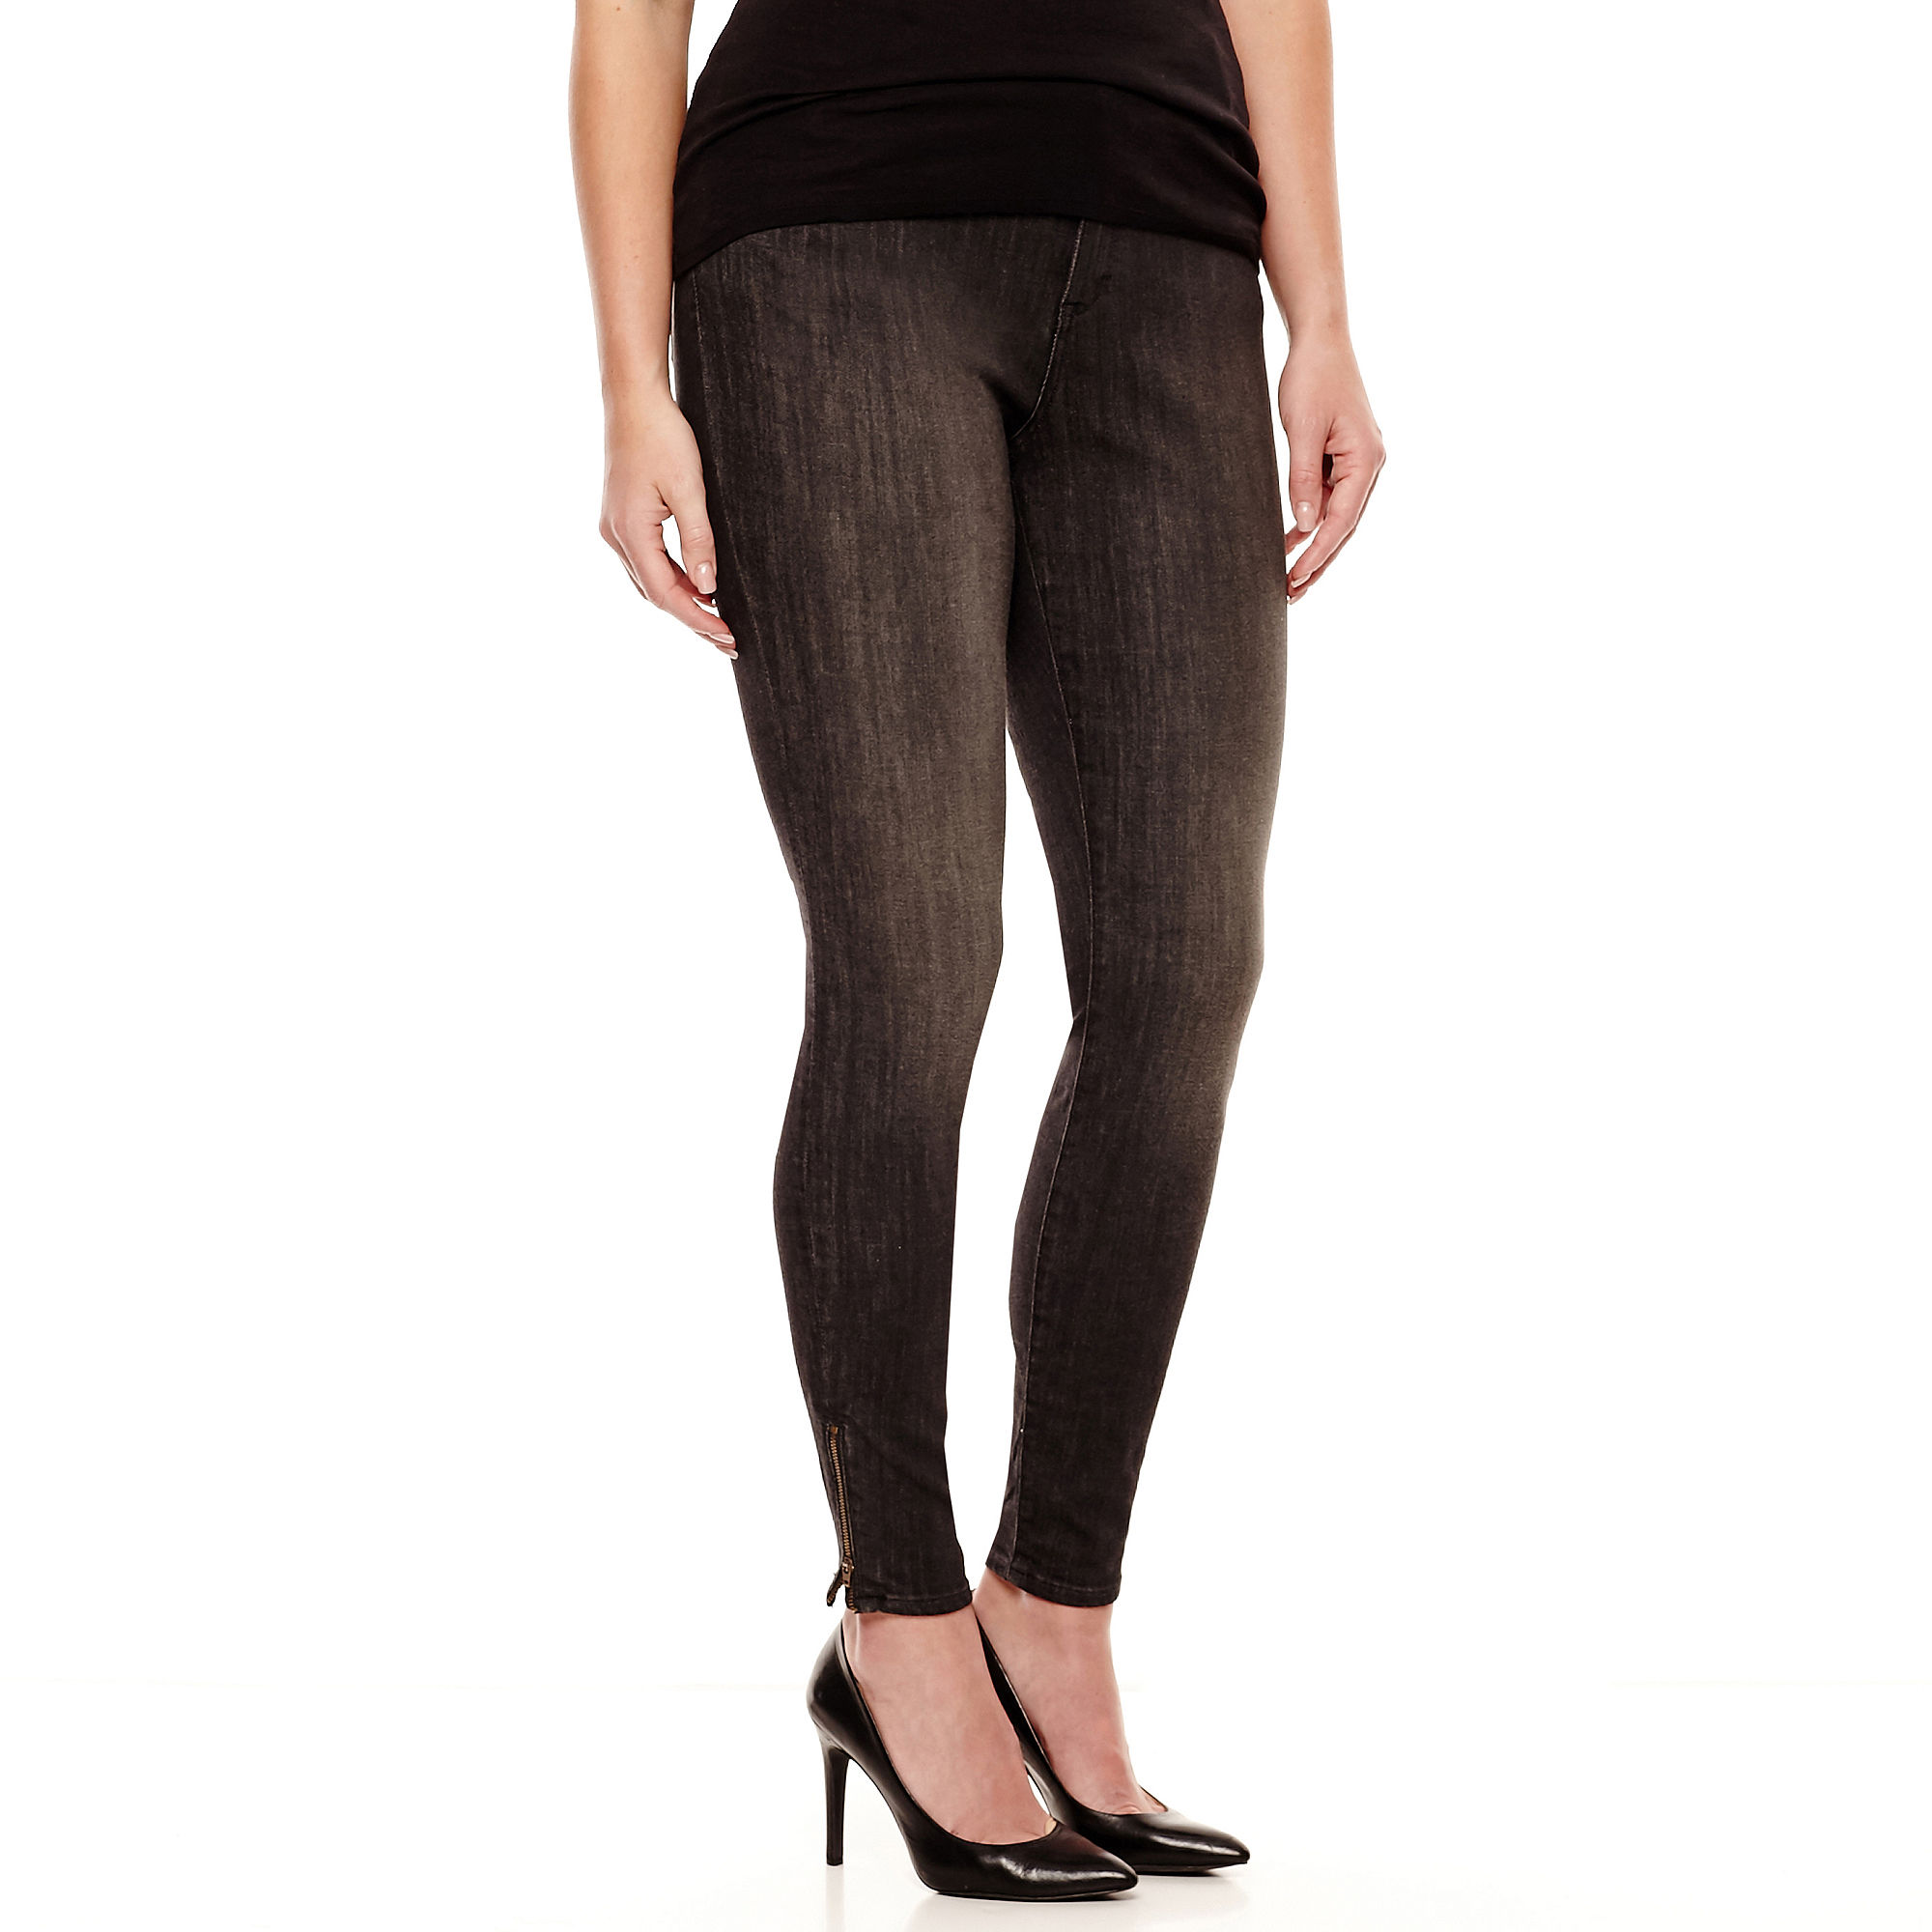 Plus Size Jeggings. Get all of the sleek, timeless style of close-fitting denim jeans and all the stretchy comfort of leggings with a pair of plus size jeggings. Jeggings, a stylish hybrid of jeans and leggings, are a super-versatile addition to any wardrobe.